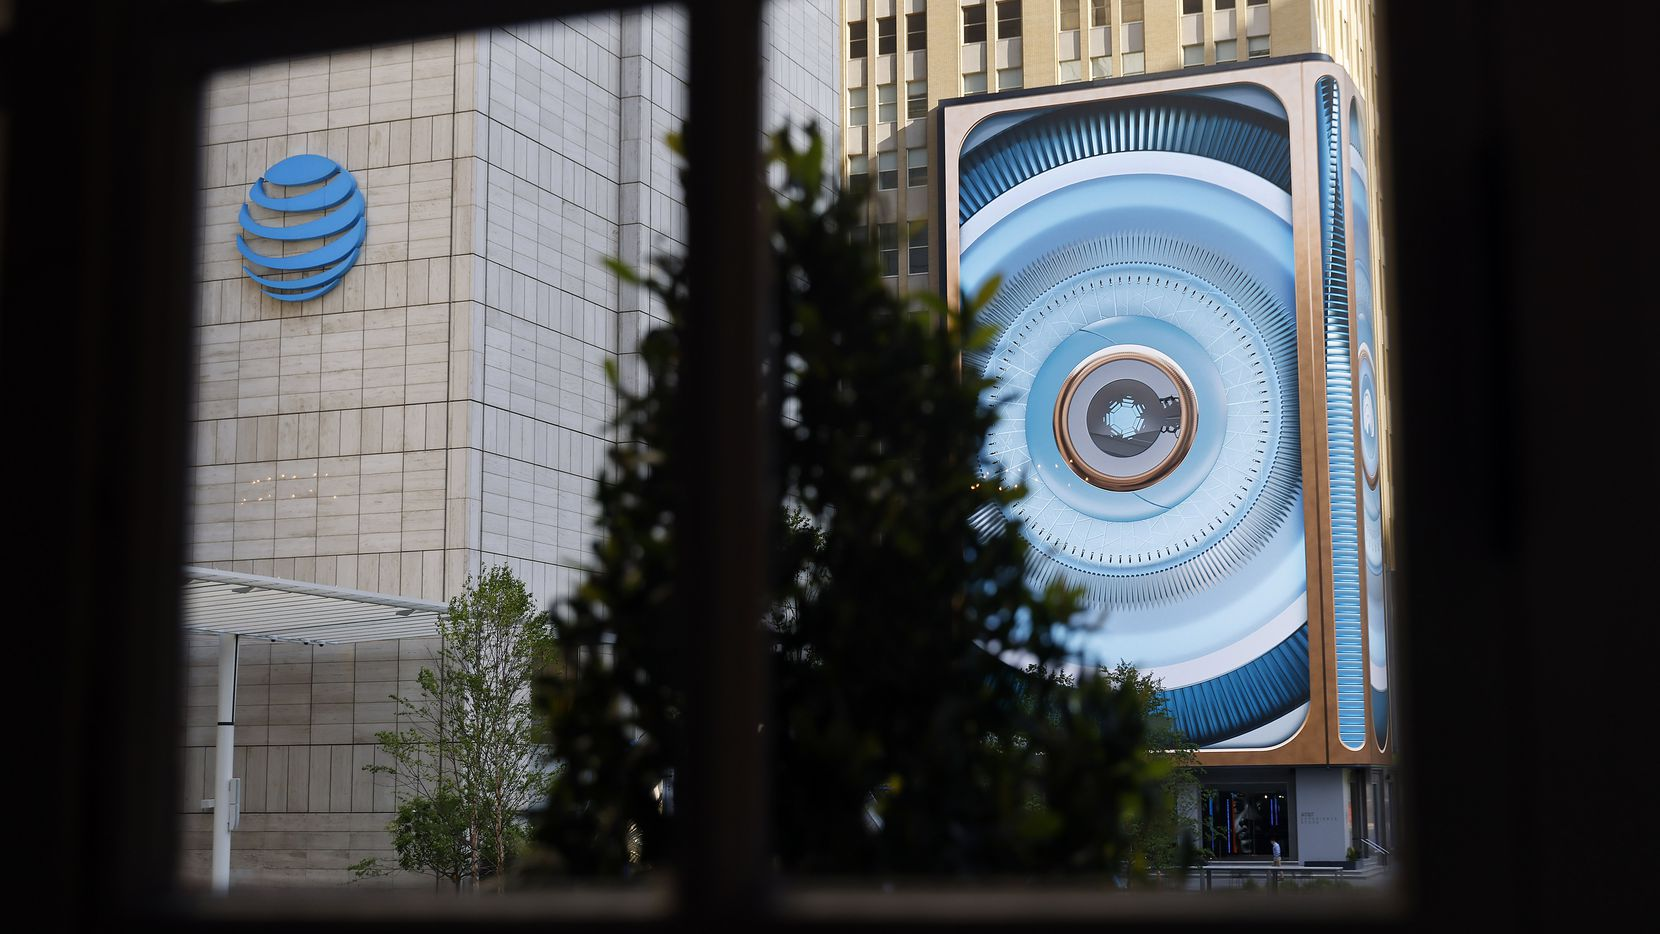 The AT&T headquarters are at the heart of the new AT&T Discovery District and its large media wall in downtown Dallas.